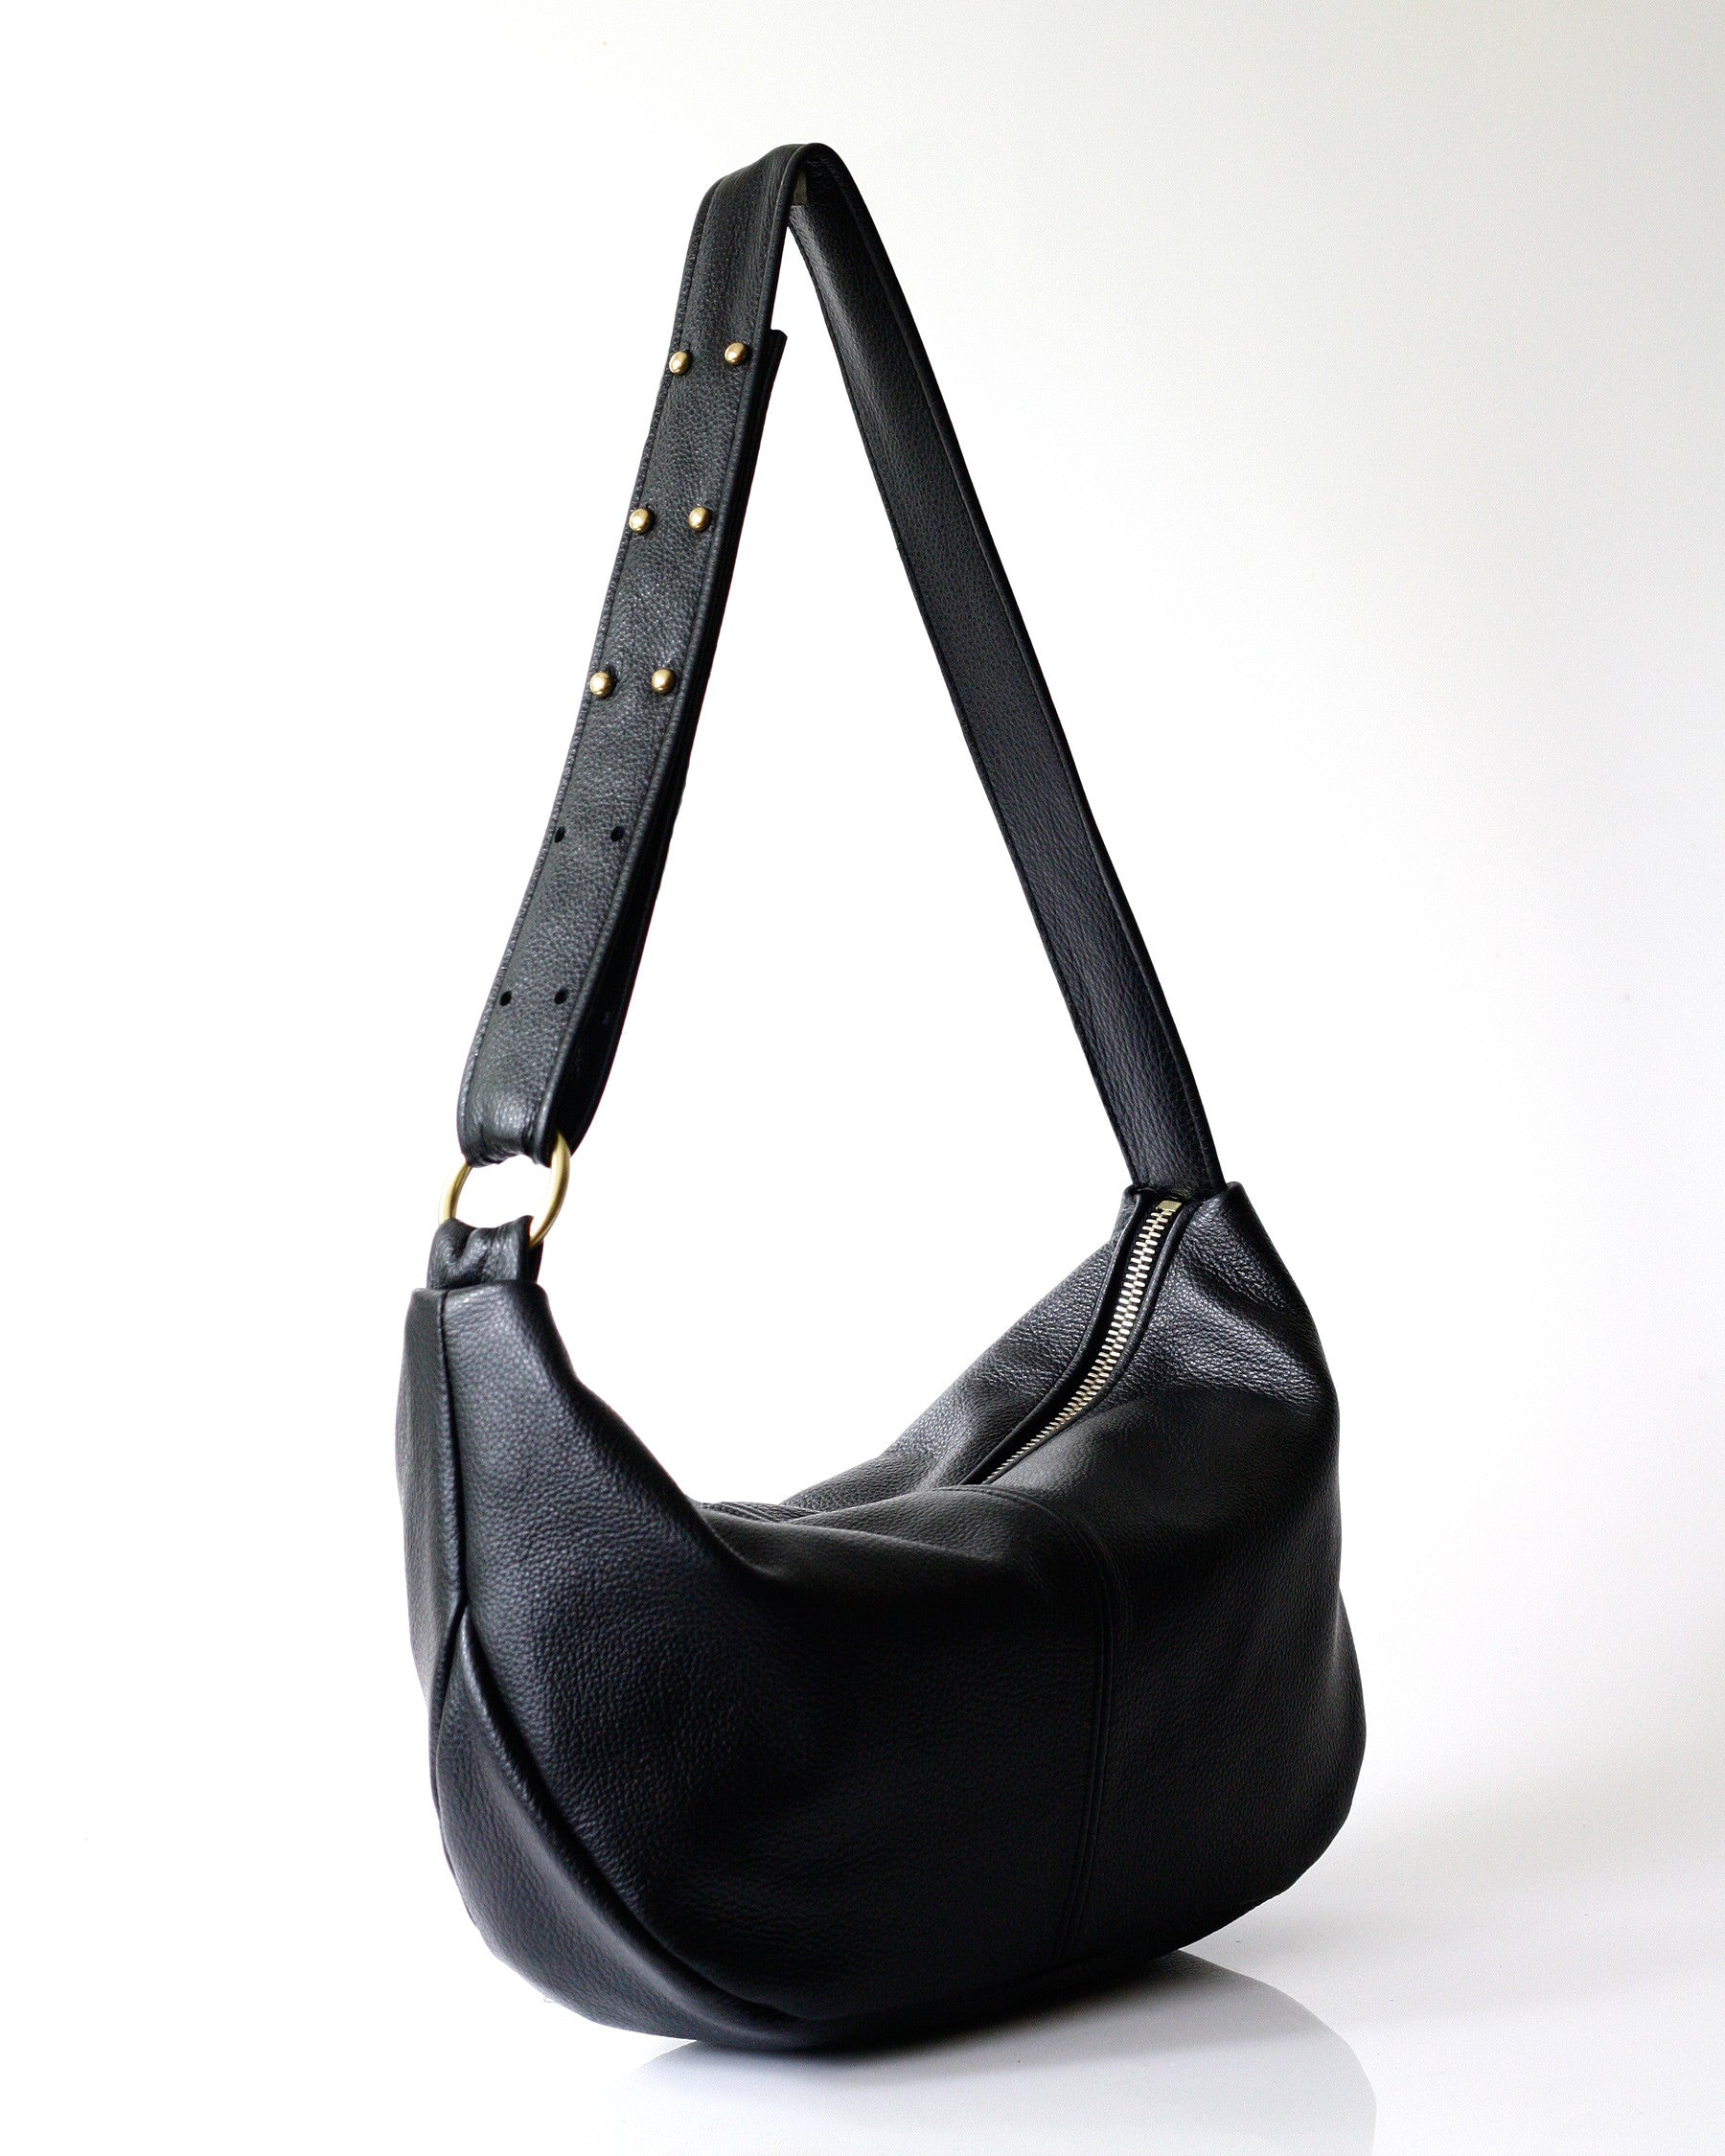 Roberta Sling - Opelle bag Permanent Collection - Opelle leather handbag handcrafted leather bag toronto Canada